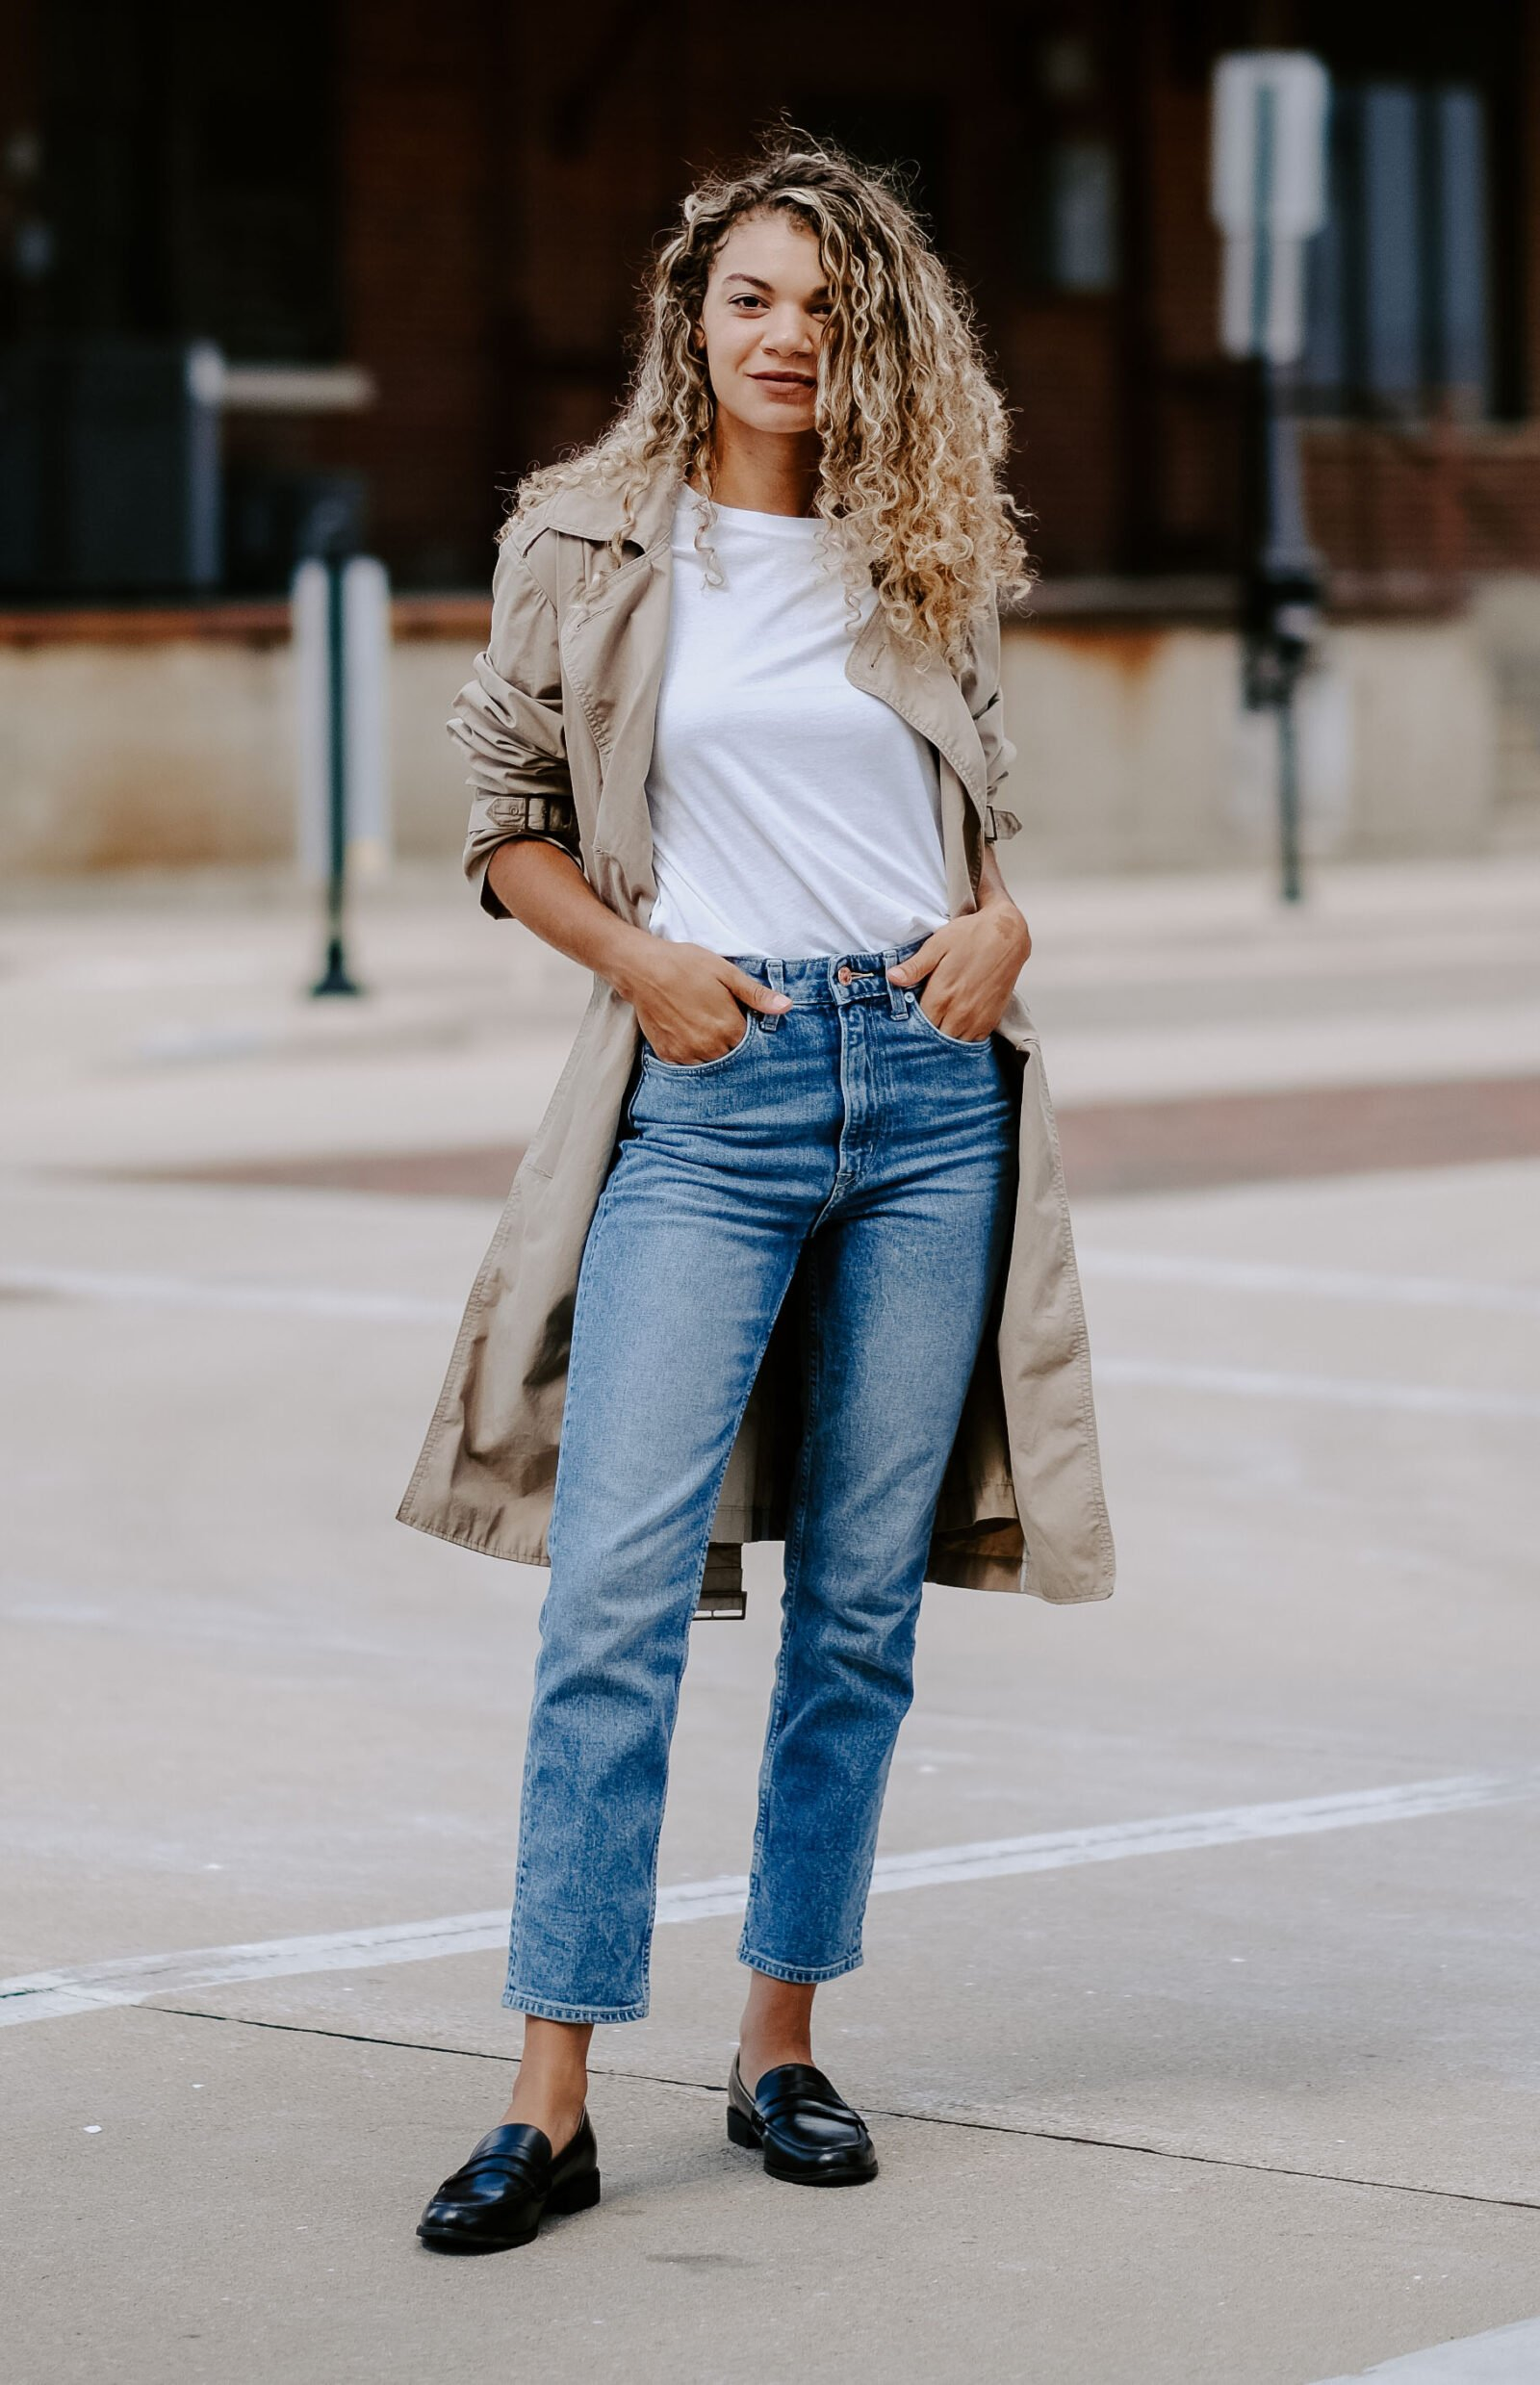 trench coat outfit for fall